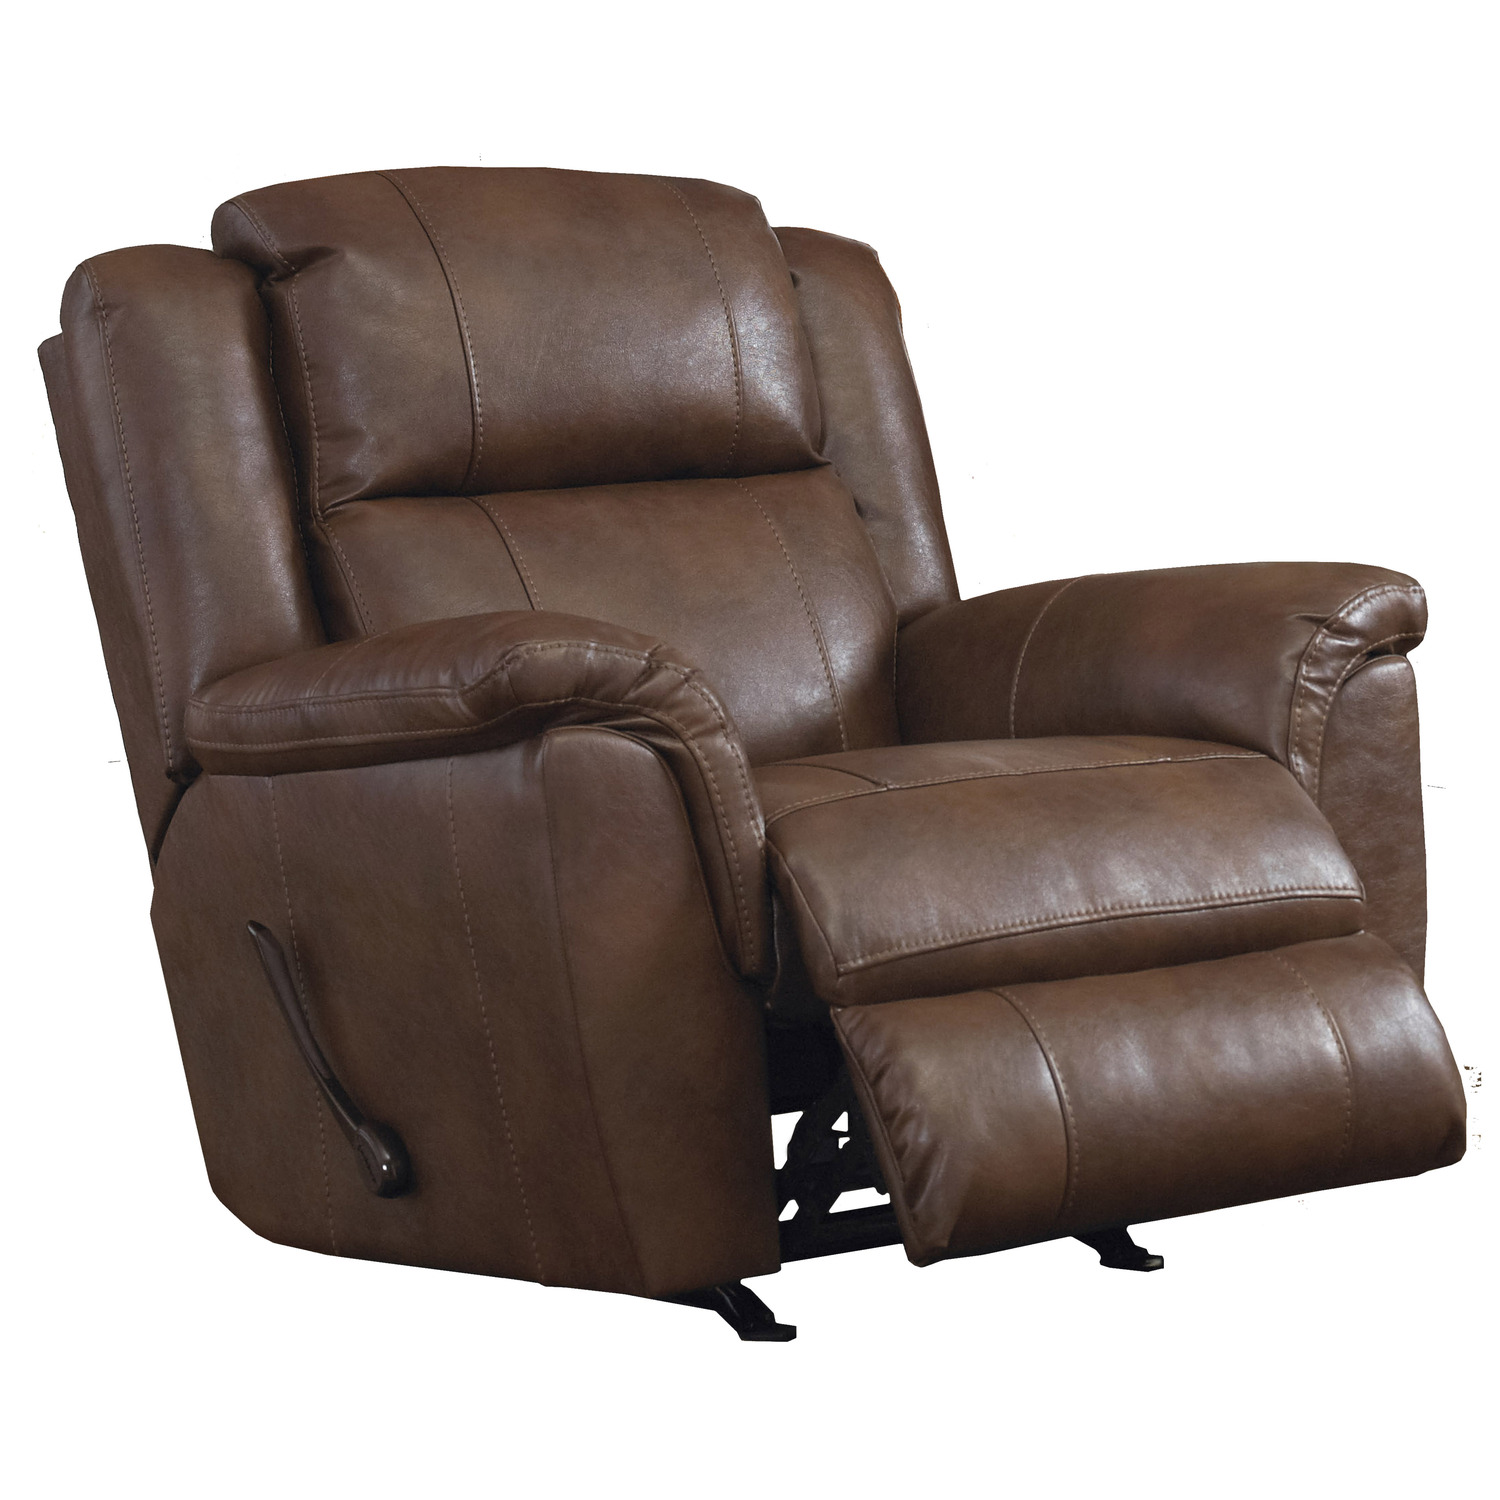 Jackson Furniture Verona Leather Rocker Recliner By Oj